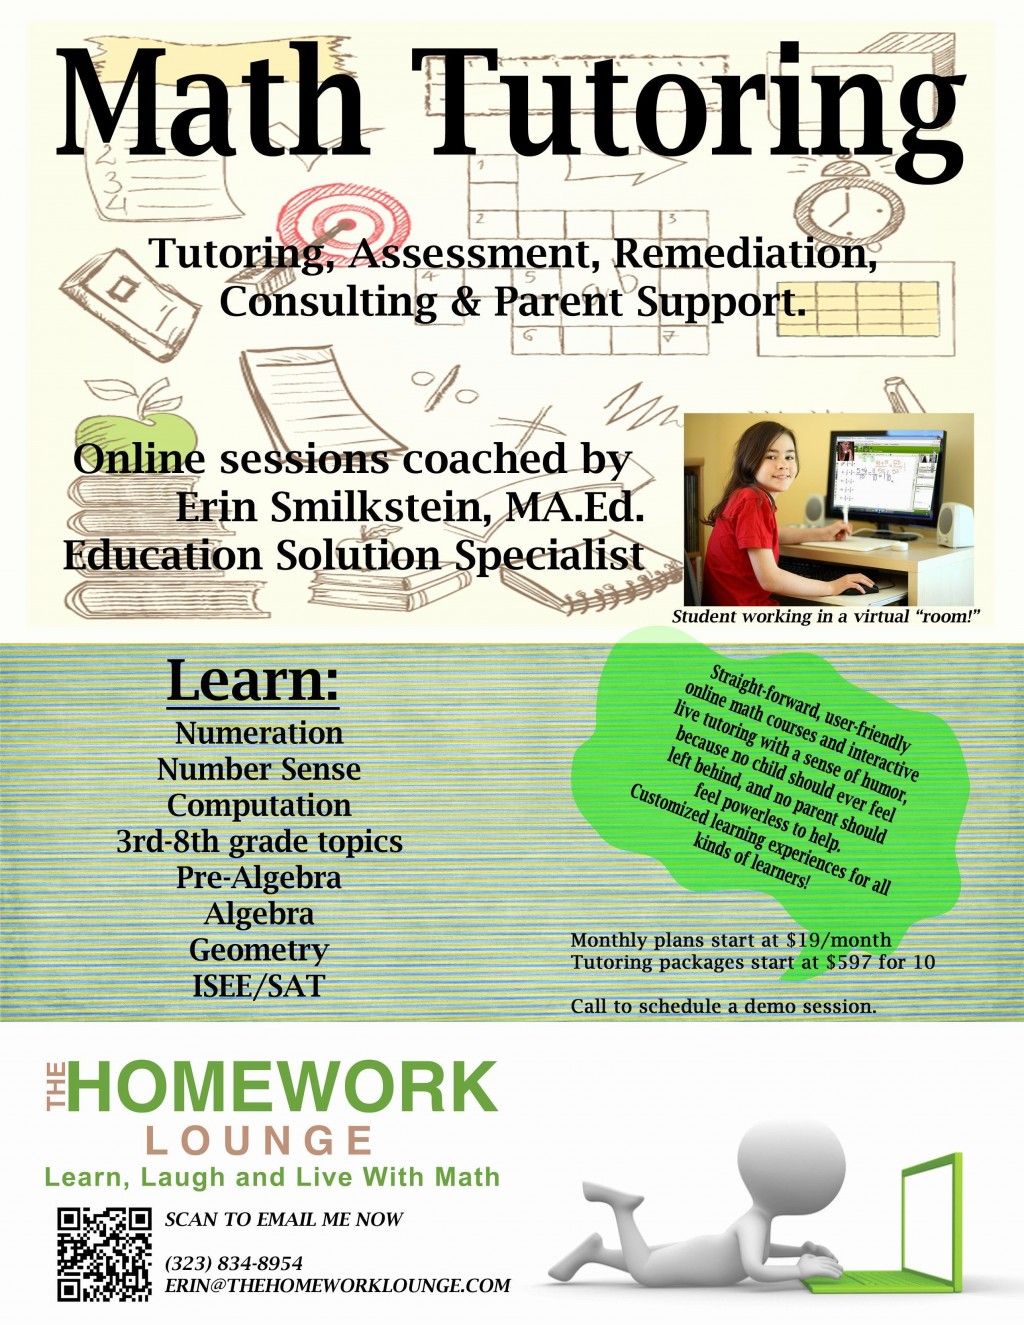 001 Wondrou Tutoring Flyer Template Free Photo  WordLarge